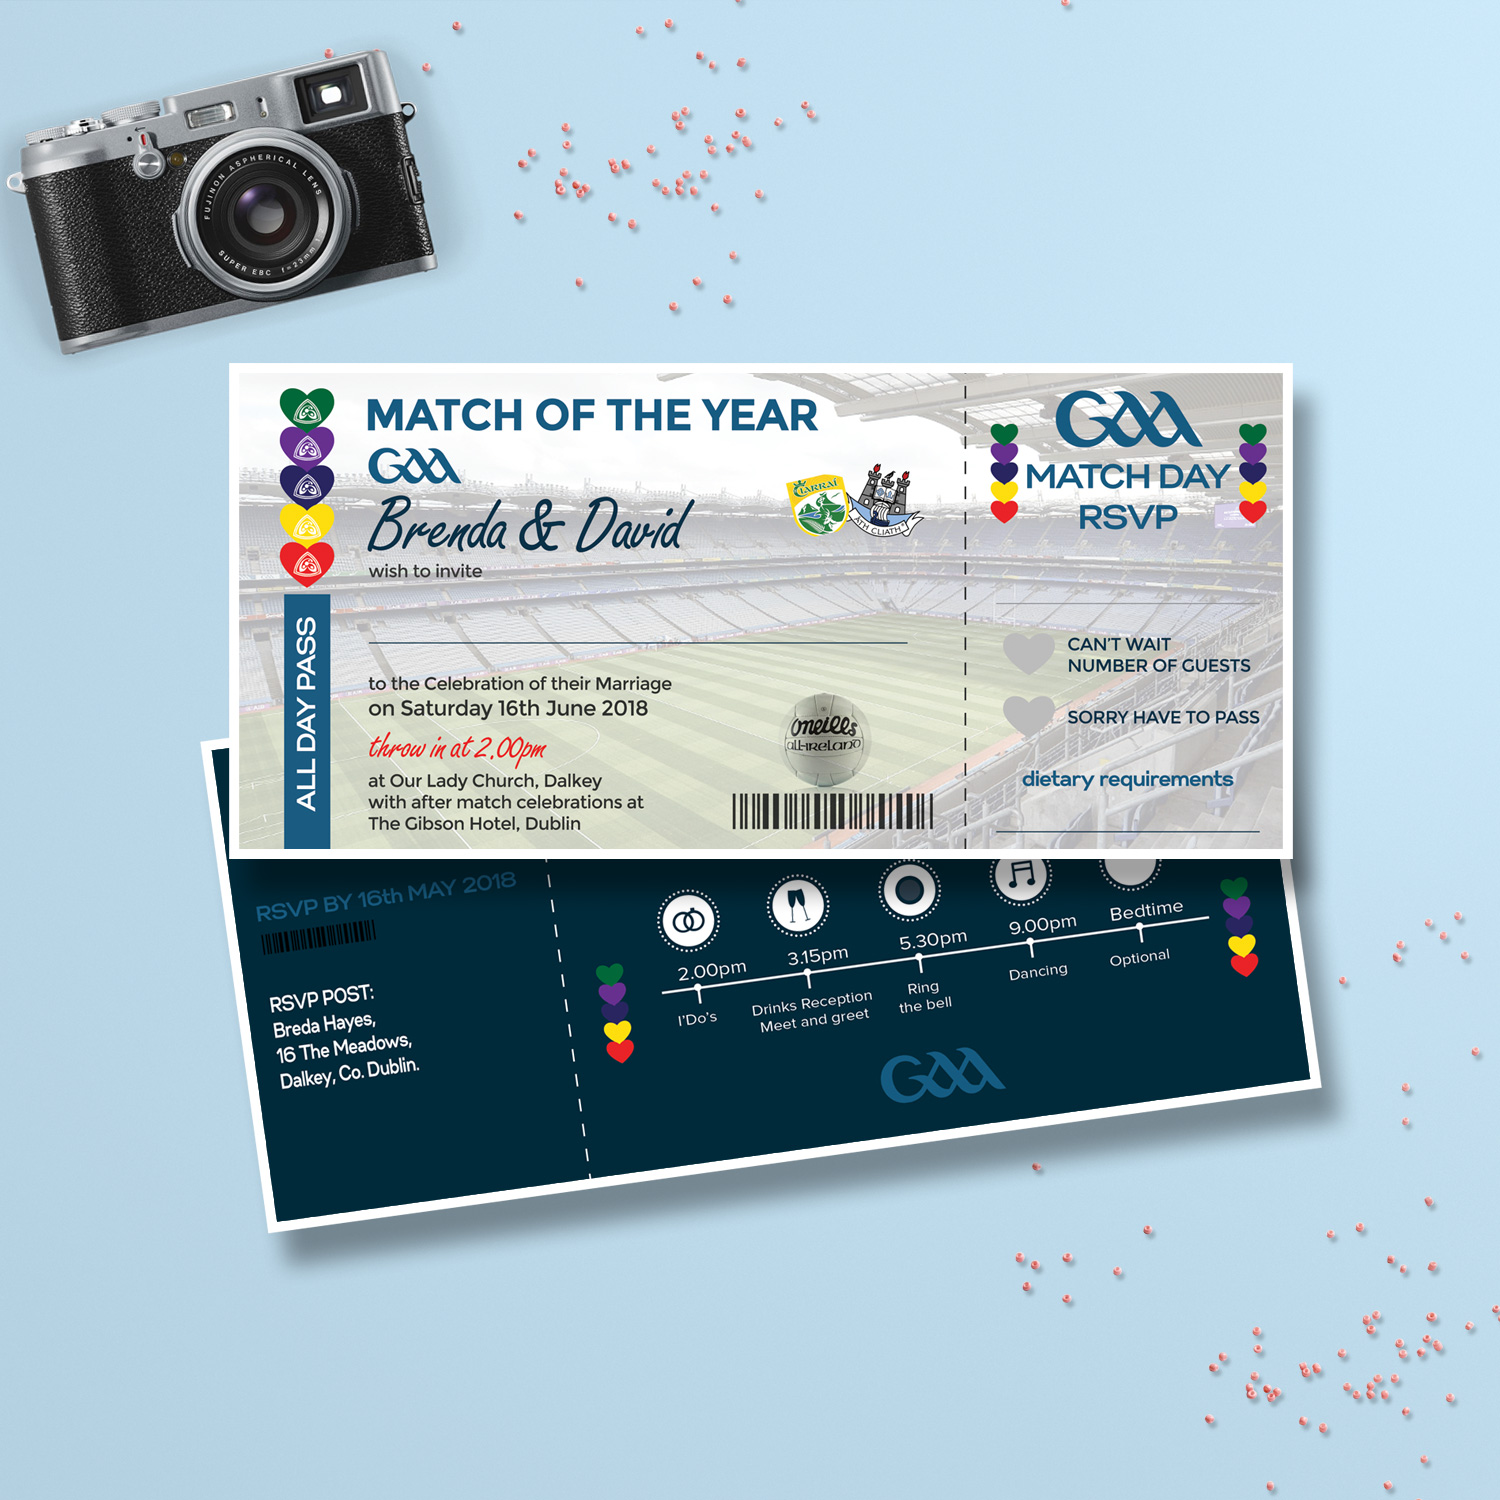 GAA wedding invitation - ticket wedding invitations killarney